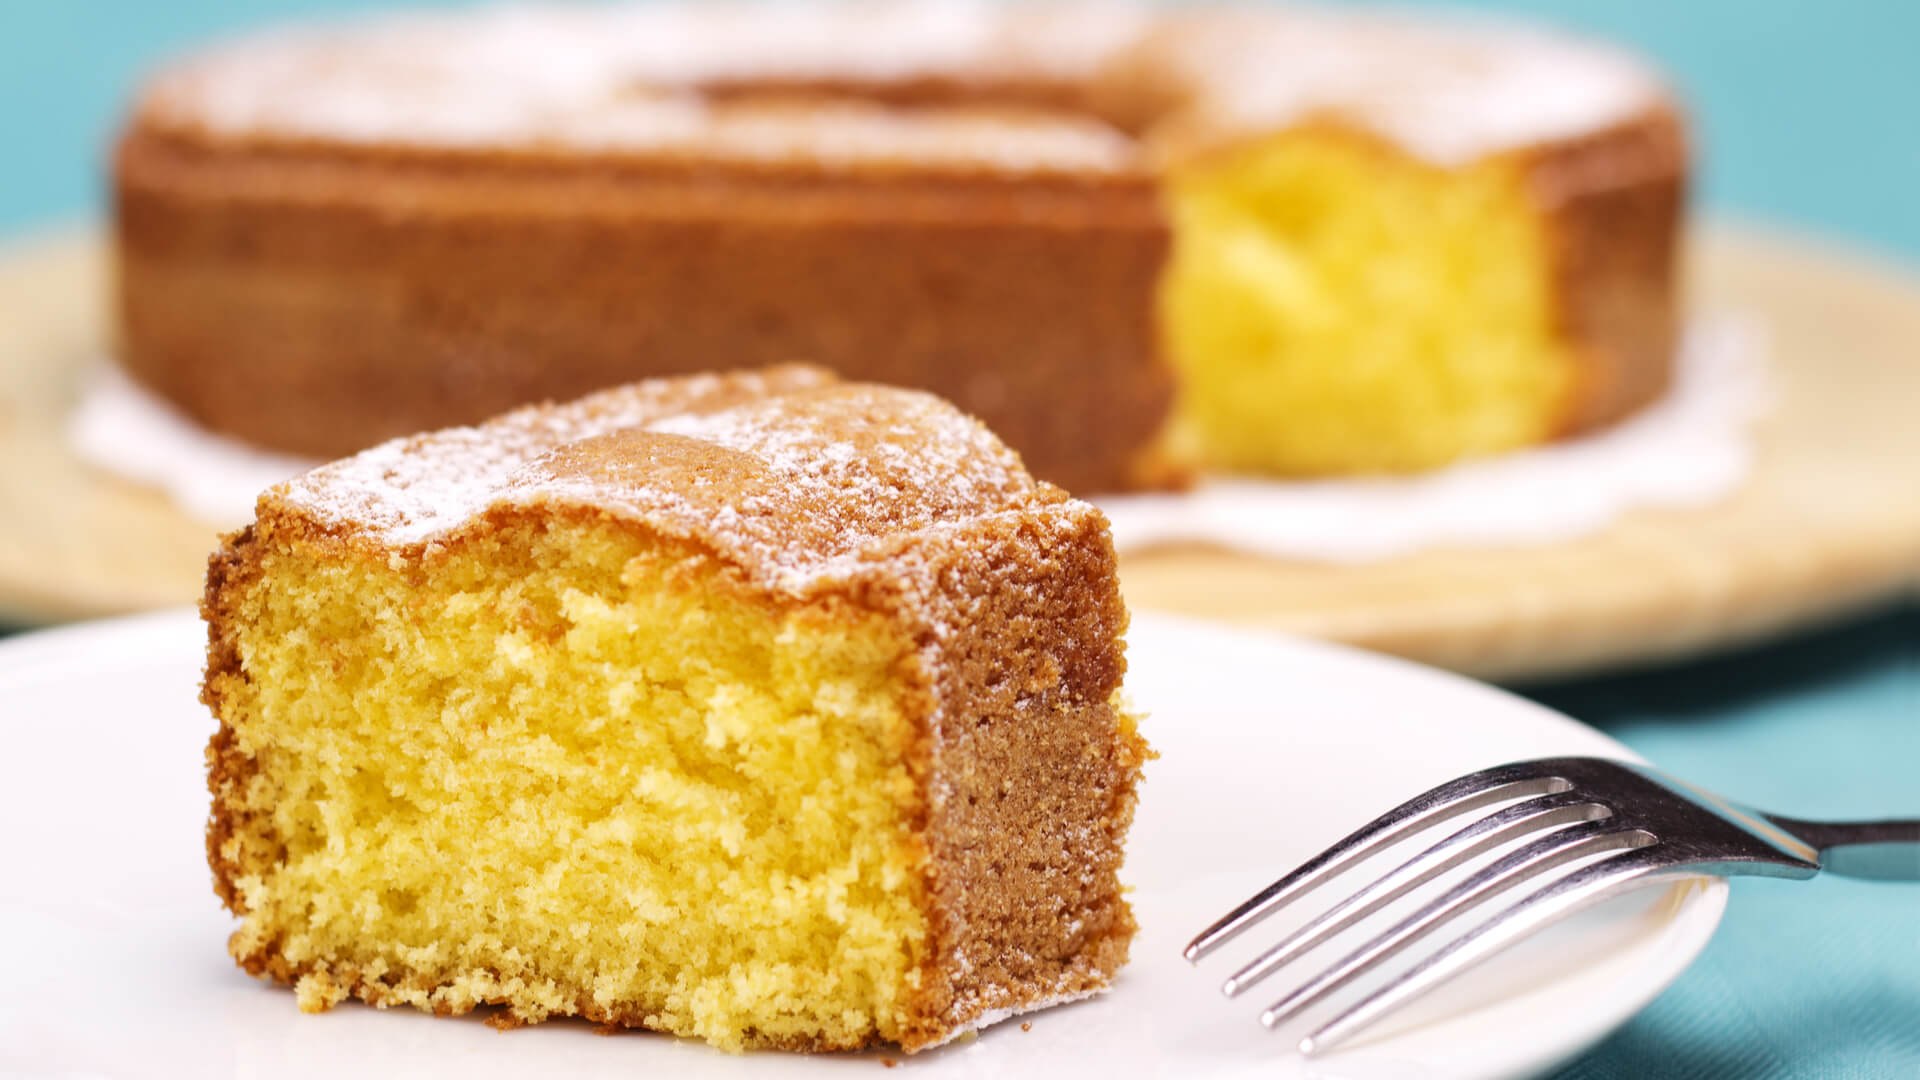 A closeup of a piece of lemon cake with icing sugar